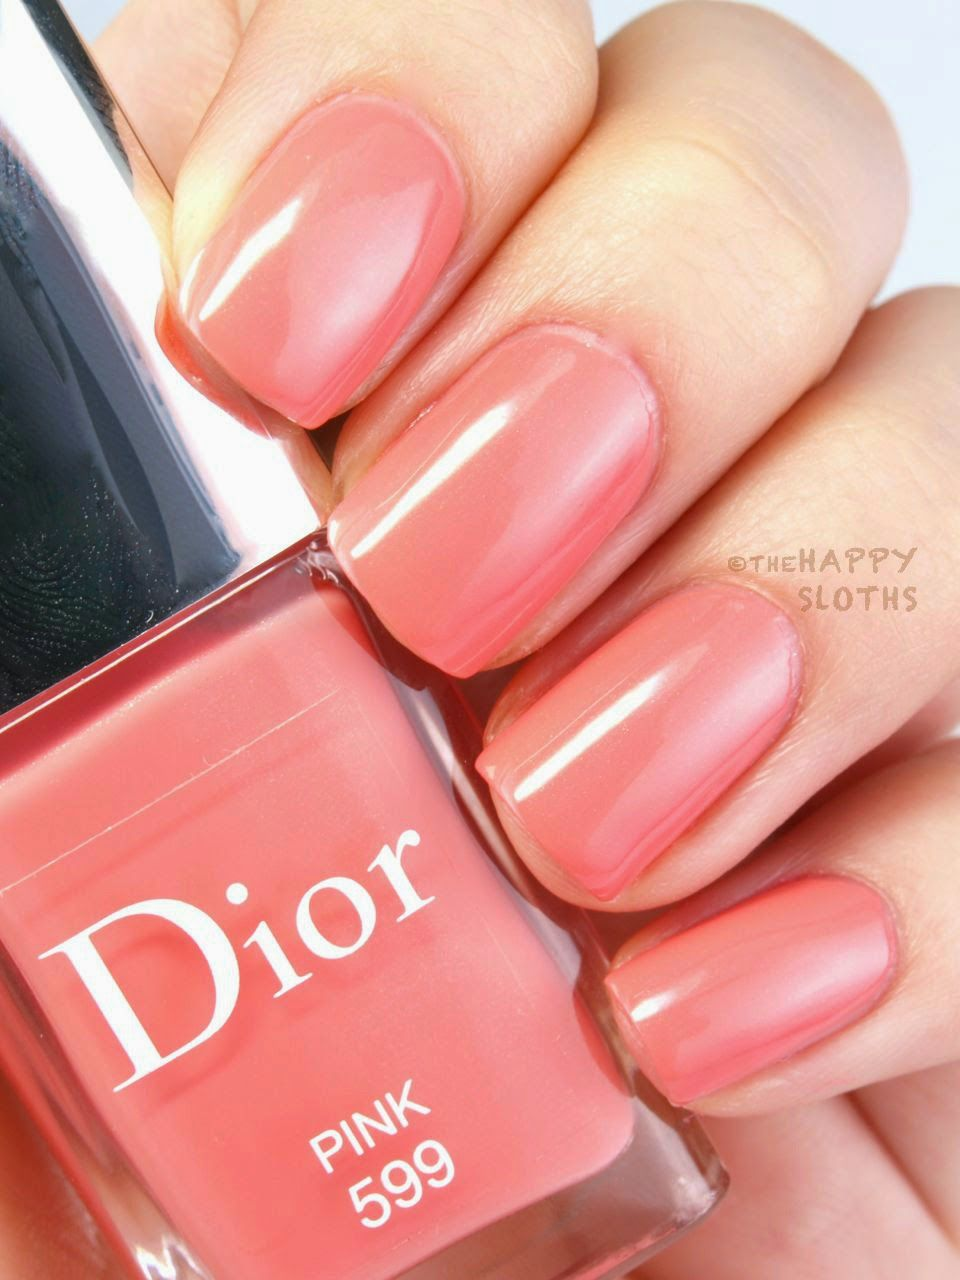 The Happy Sloths: Dior Vernis Spring 2015 Limited Edition Nail ...